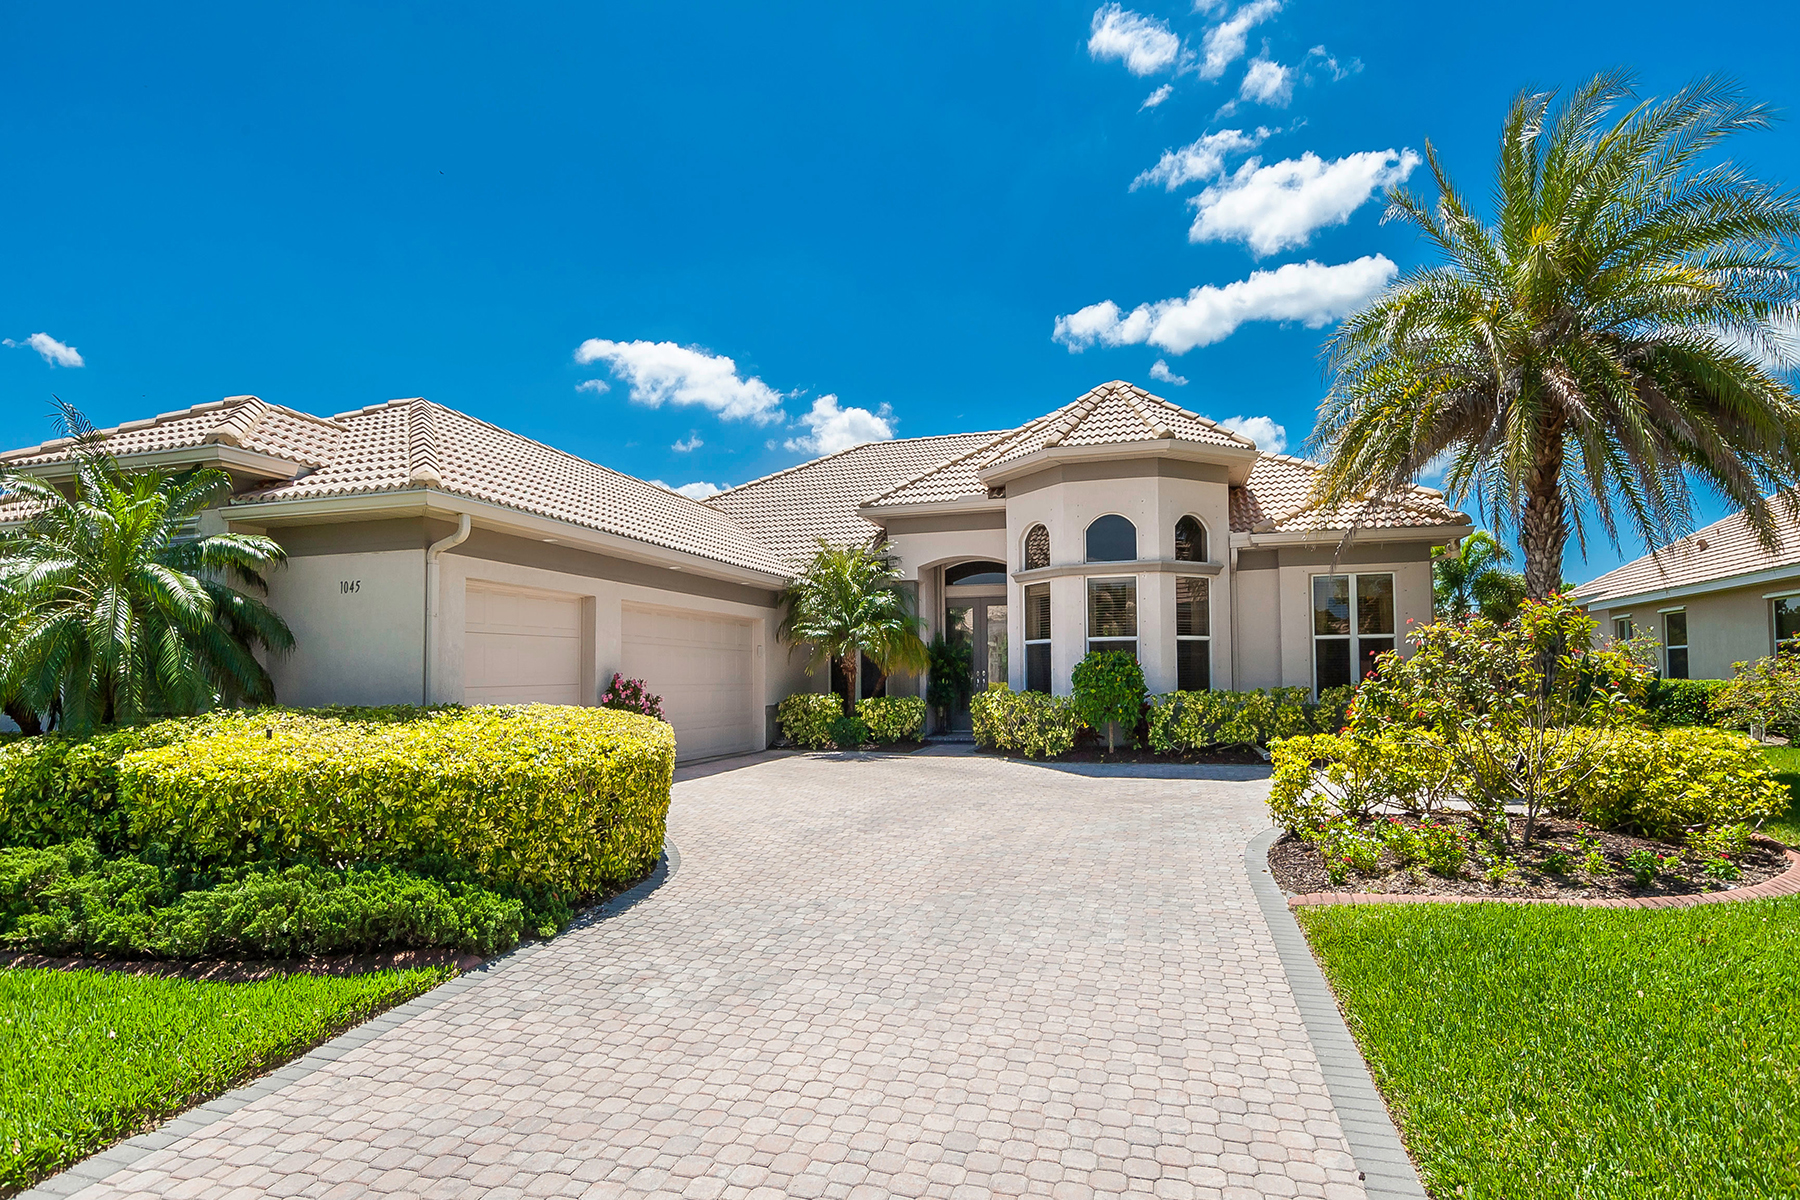 Single Family Home for Sale at PELICAN POINTE GOLF & COUNTRY CLUB 1045 Tuscany Blvd, Venice, Florida 34292 United States